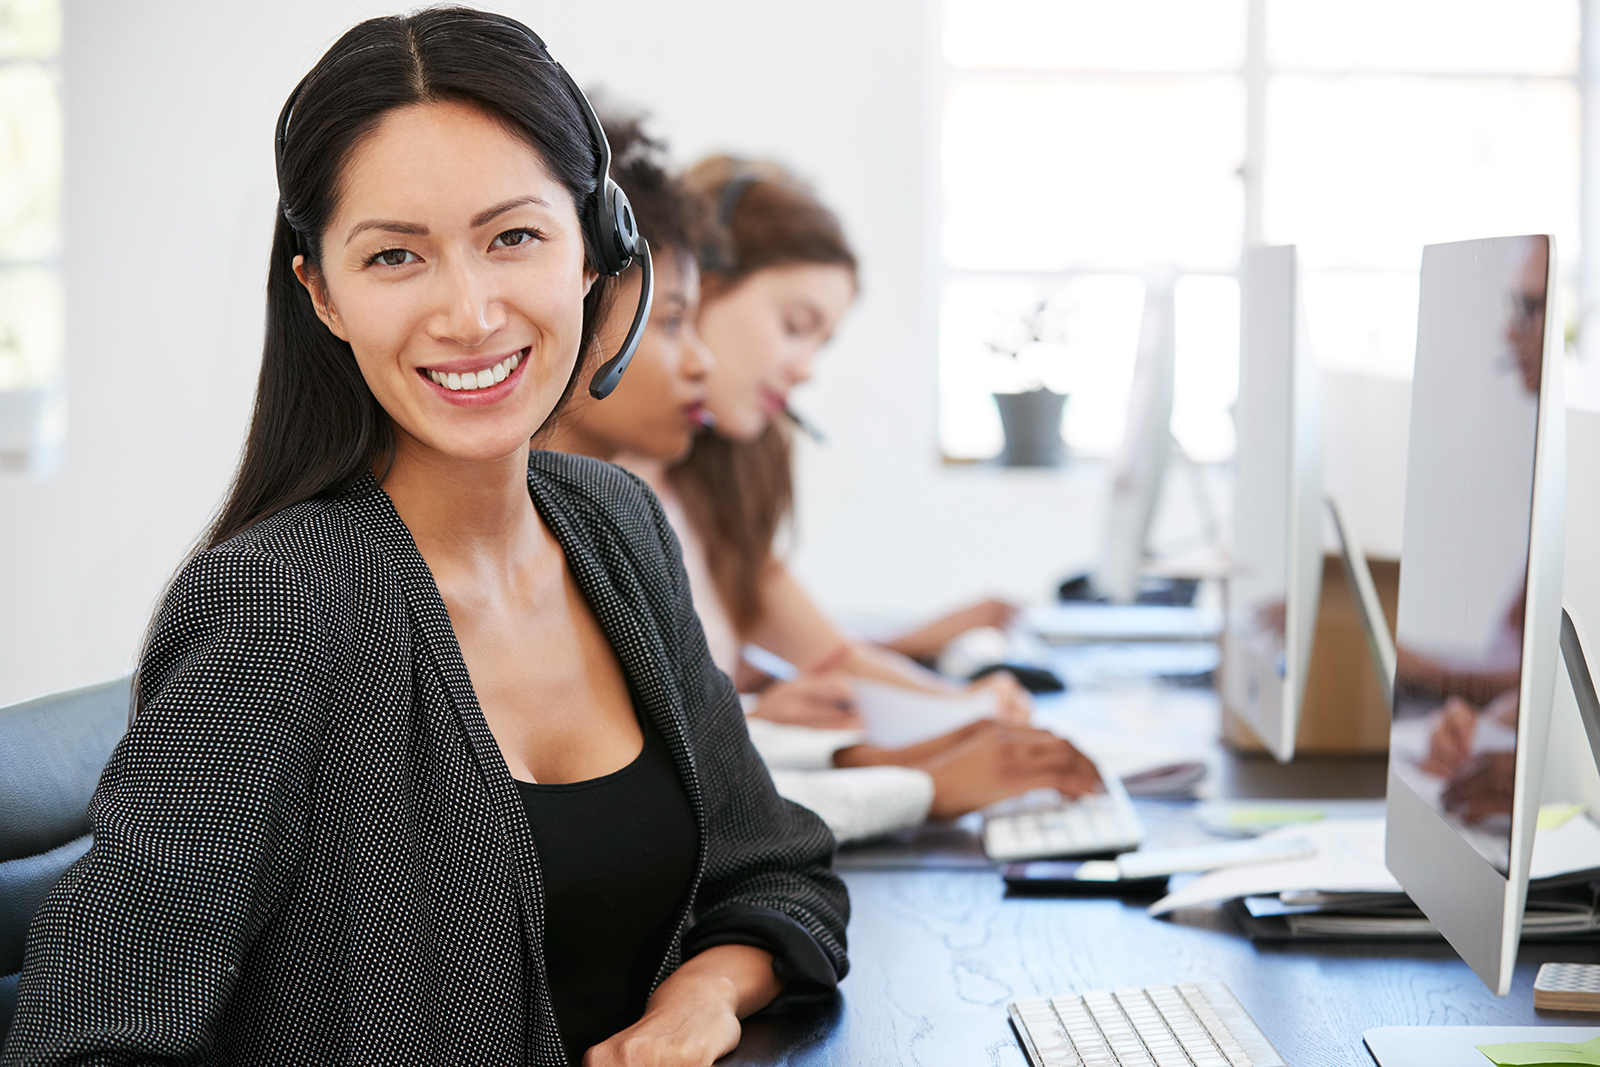 young-asian-woman-with-headset-smiling-to-camera-PL8ZF9M.jpg